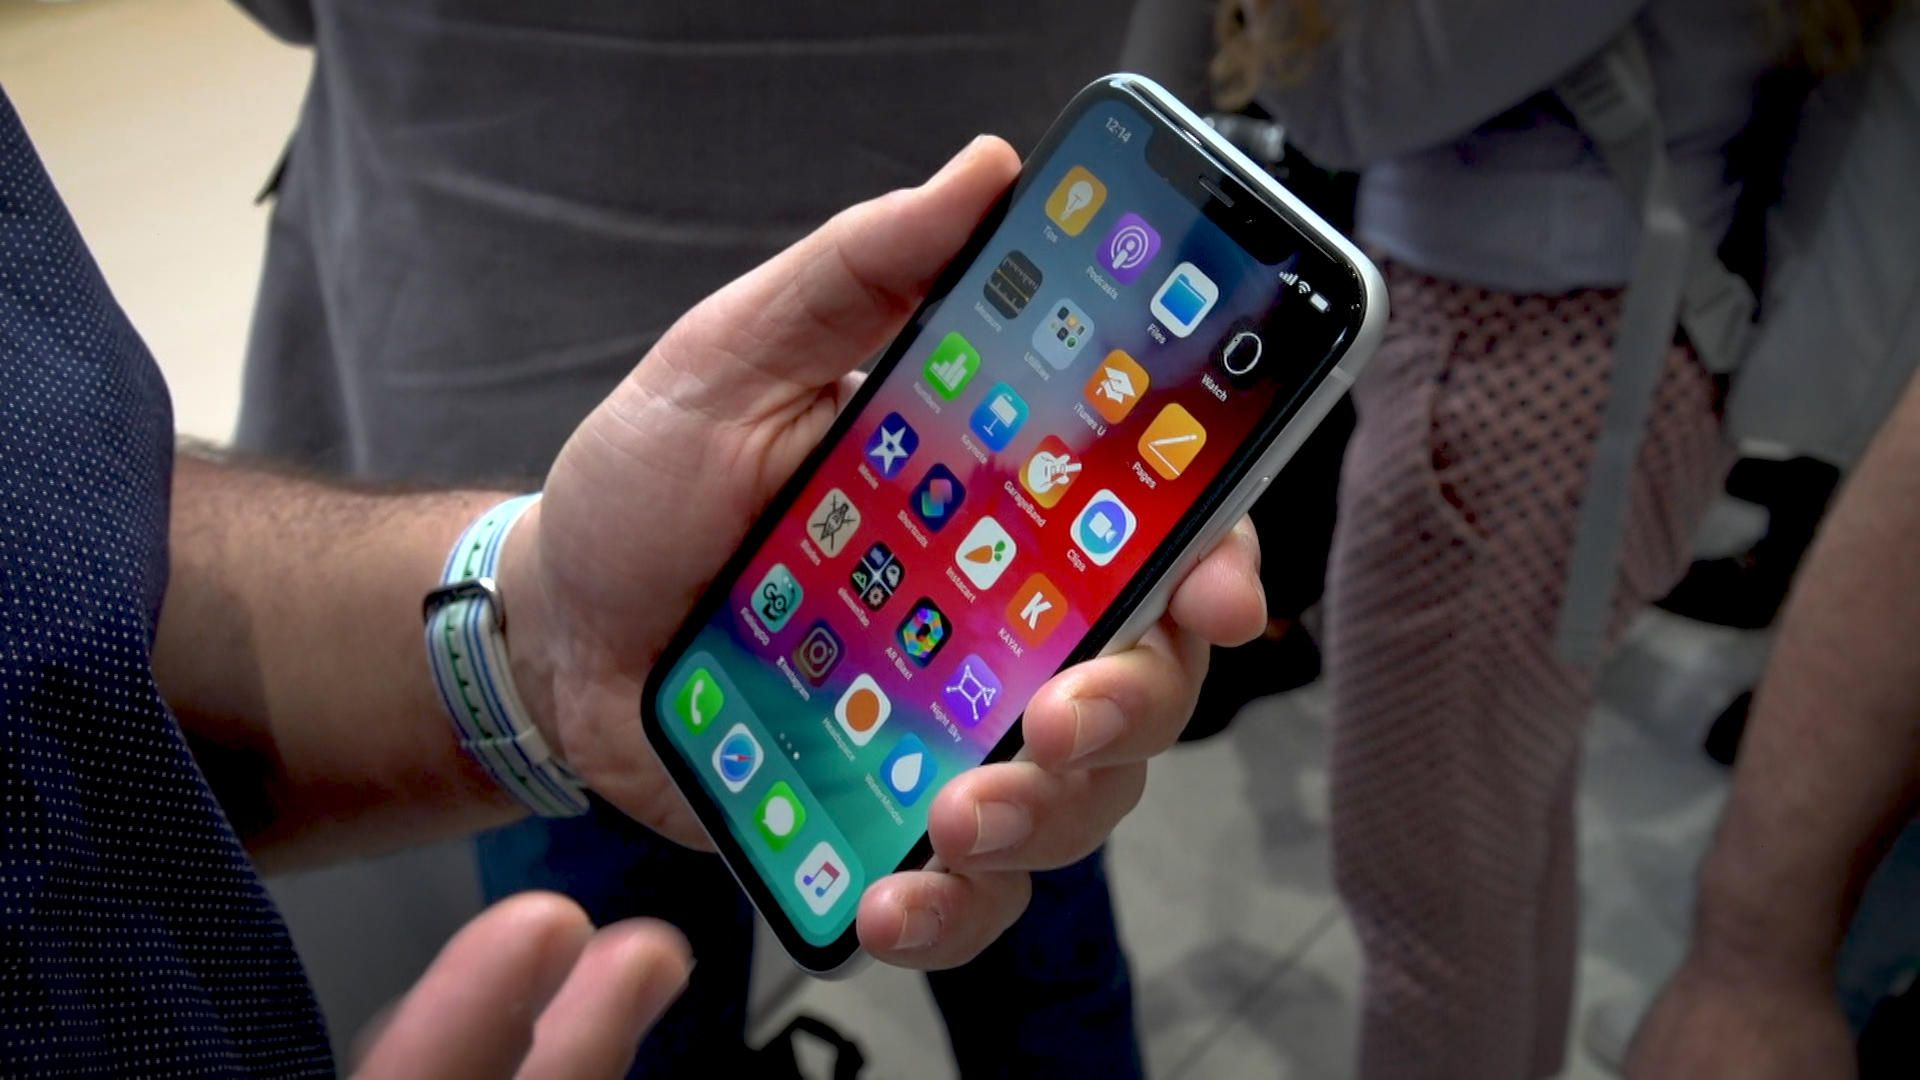 Continued bad Apple suffered iPhone sales decline